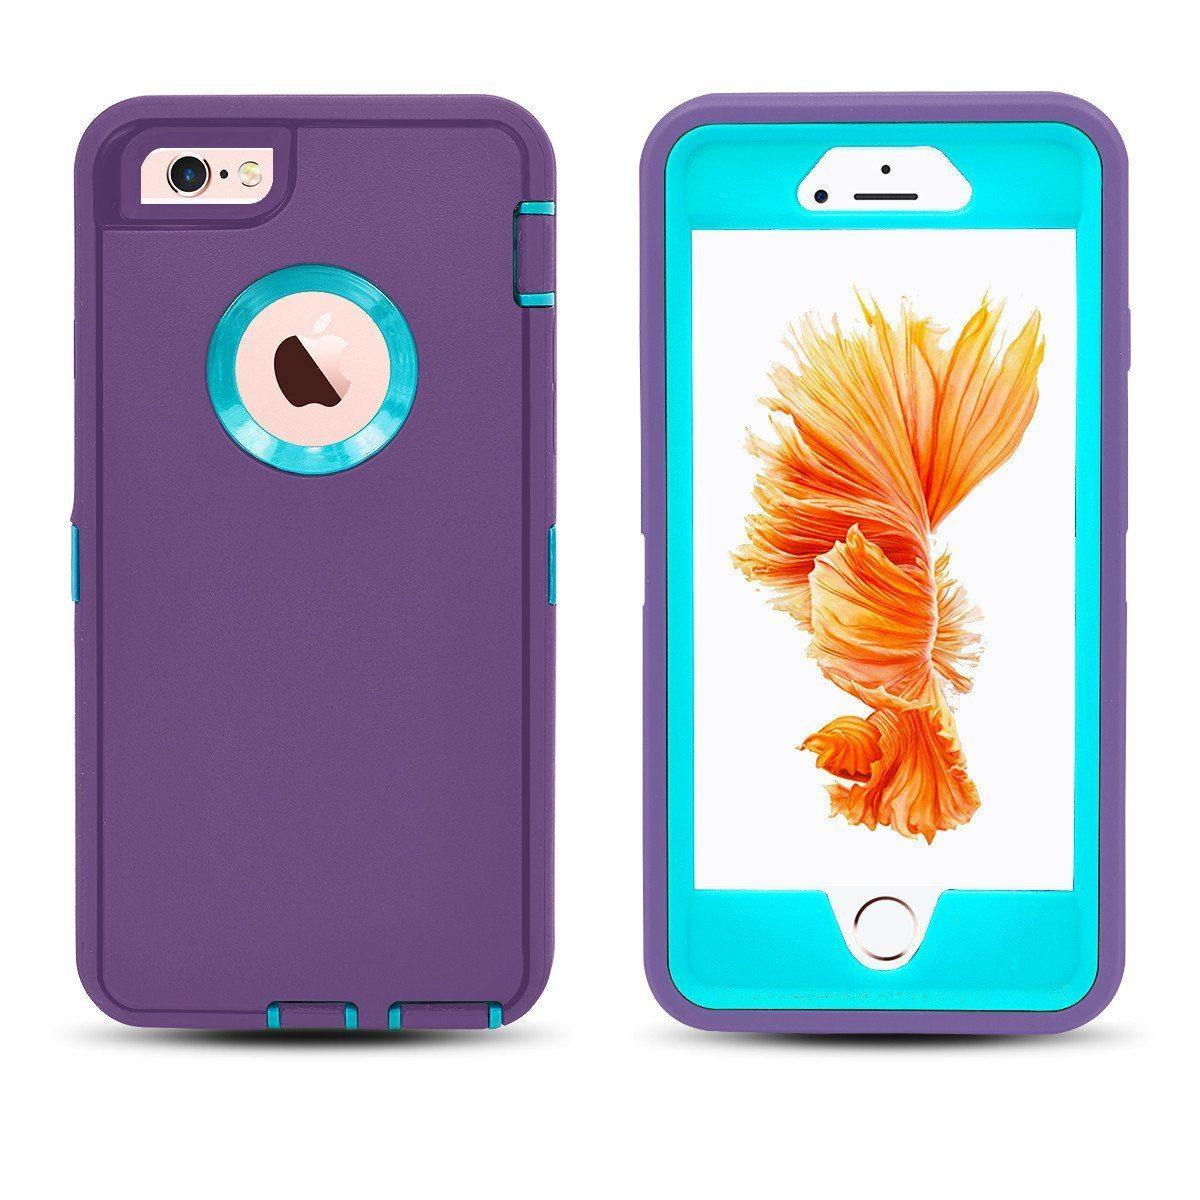 DualPro Protector Case for iPhone 6 - Purple & Light Blue